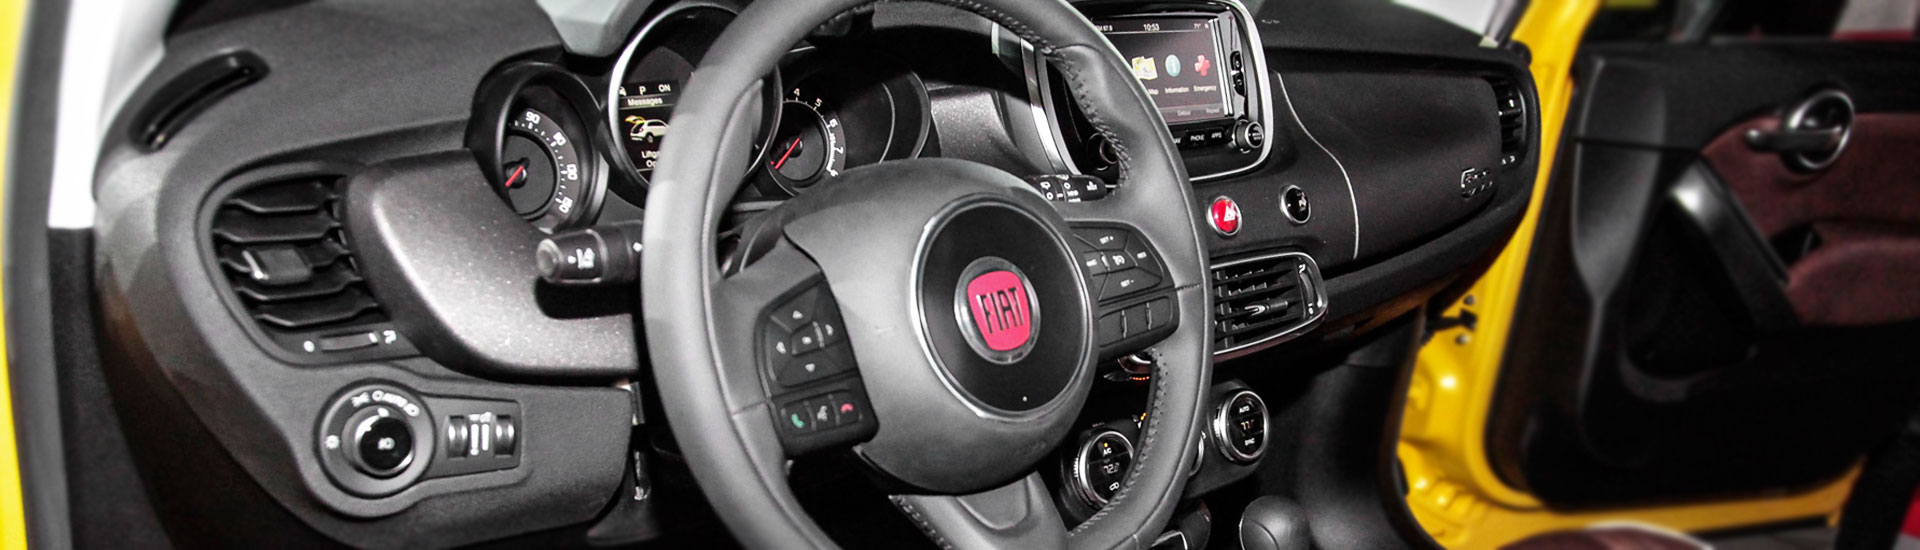 Fiat 500x Custom Dash Kits